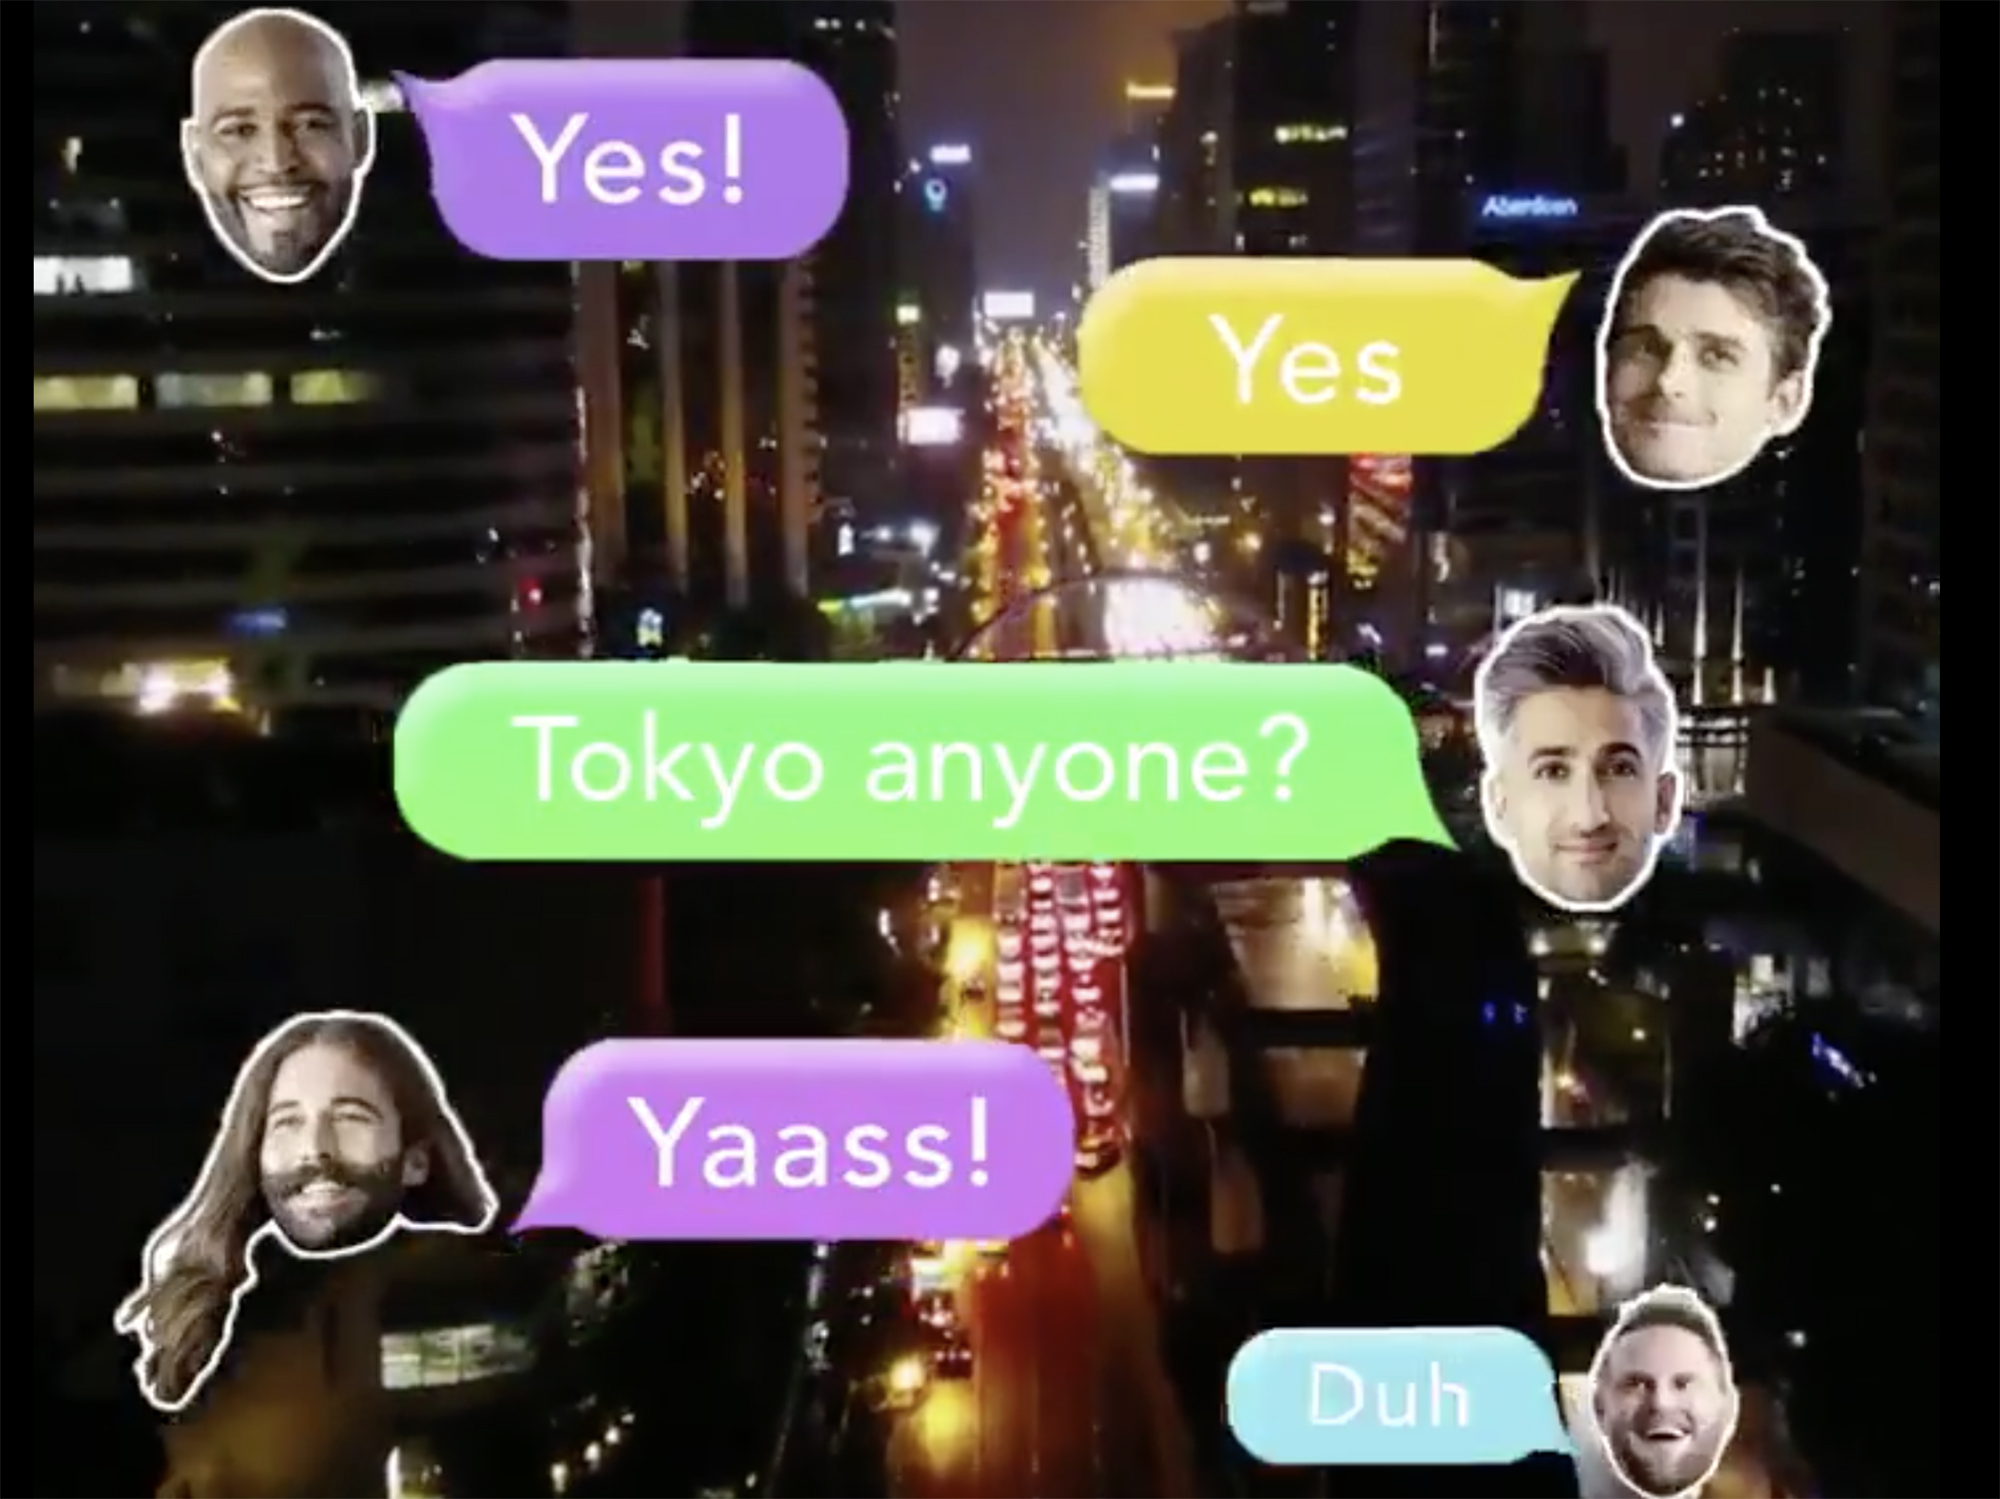 Text messages about going to Tokyo from the five stars of Queer Eye